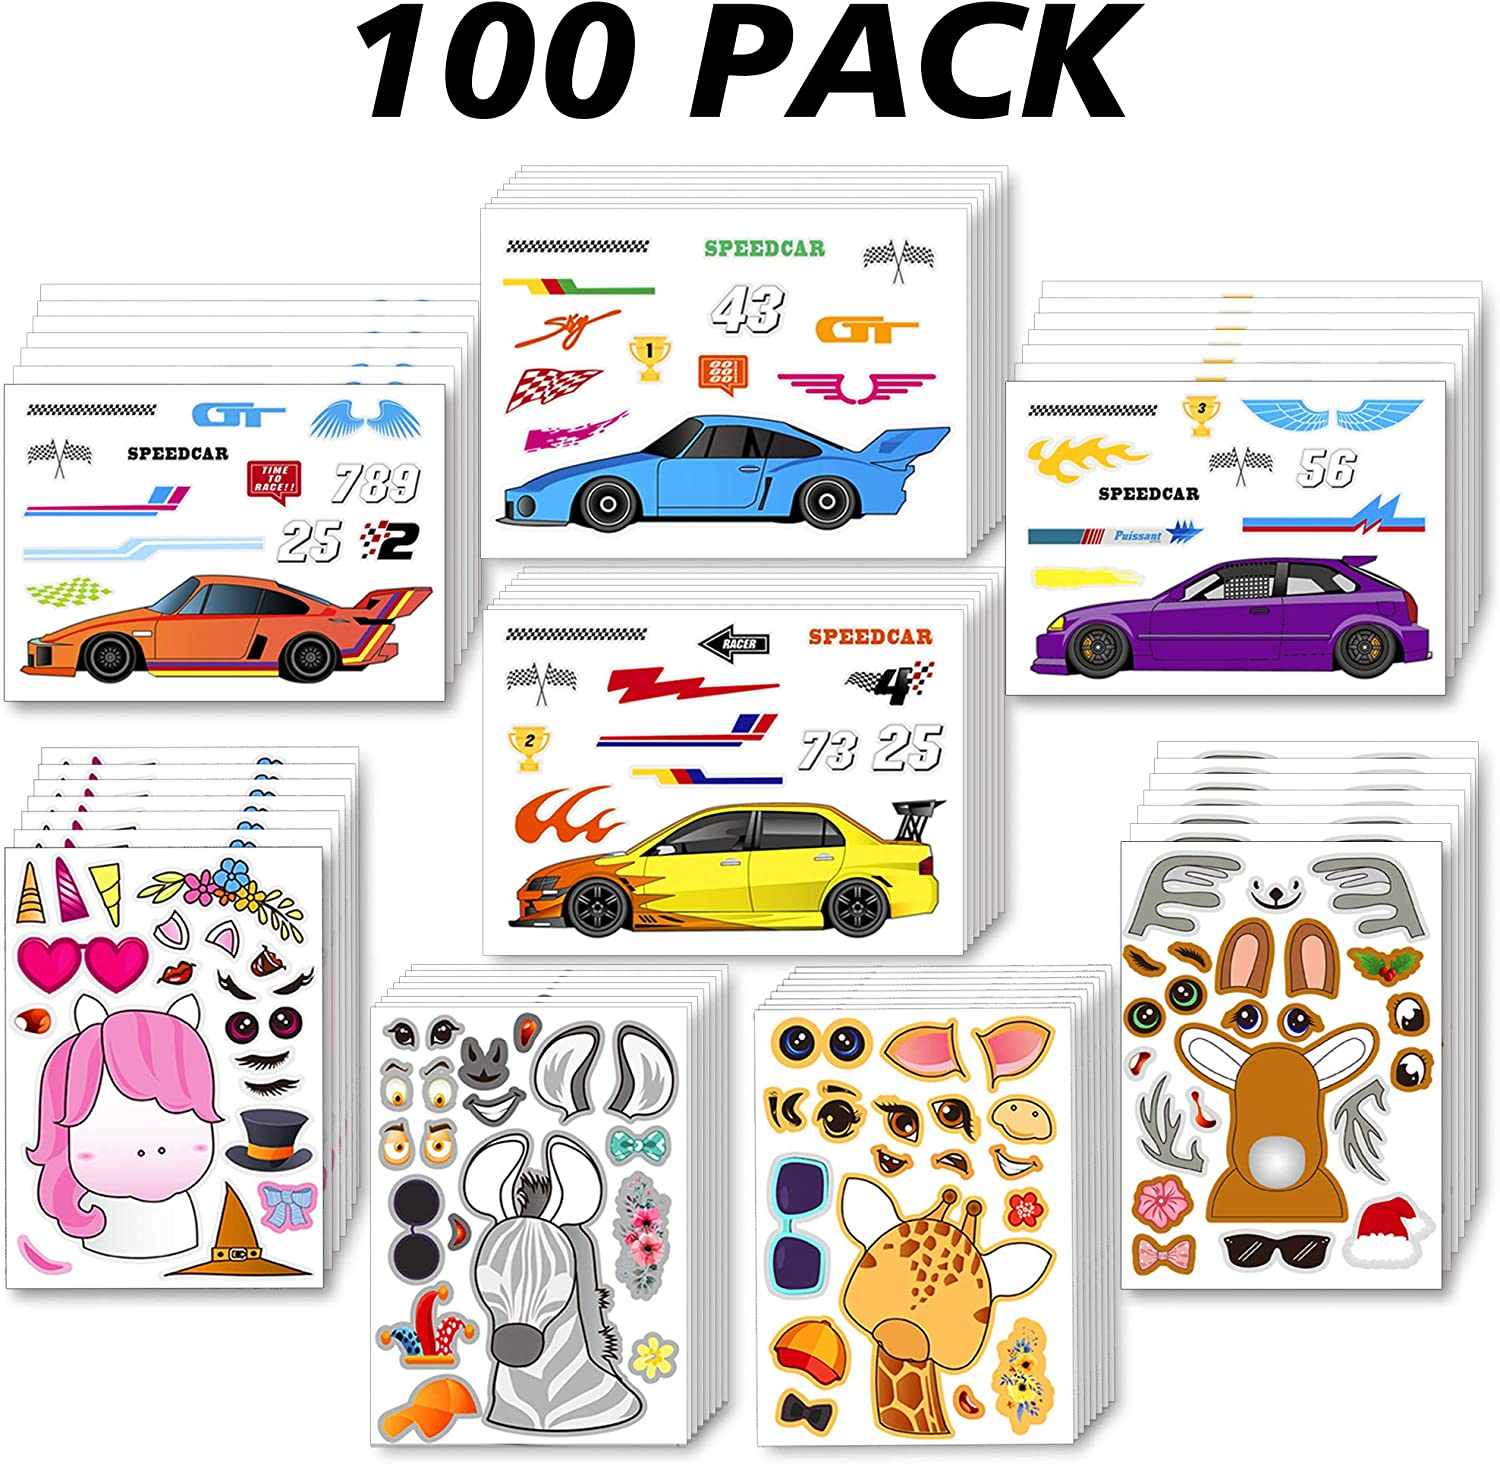 Sinceroduct Make Your Own Stickers for Kids, Make-a-Face Stickers, 100 Pack 12 Designs. Cool Cars, Zoo Animals and More, Home Game, Gift of Festival, Reward, Art Craft, Party Favors, School